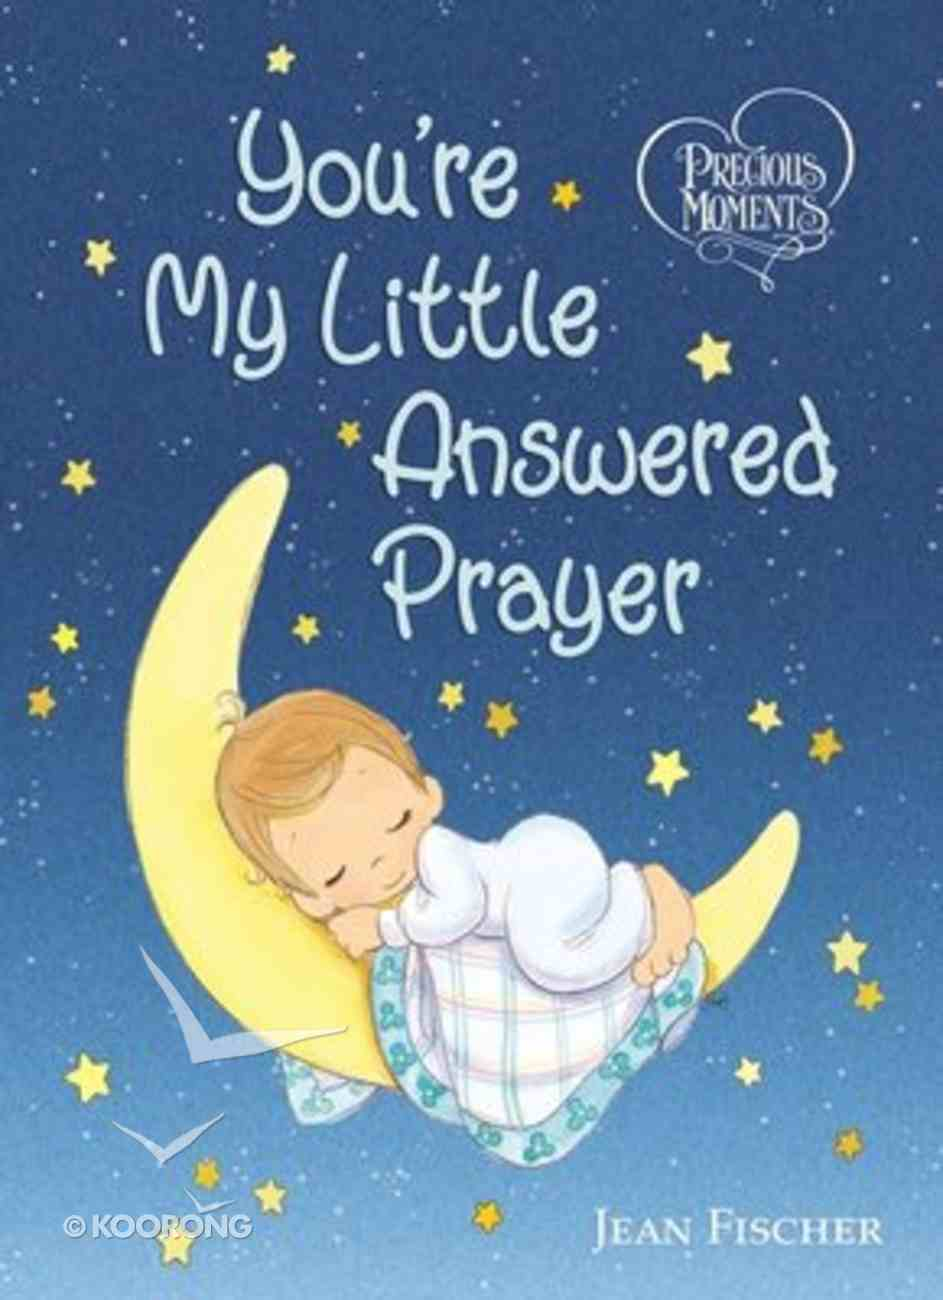 Precious Moments: You're My Little Answered Prayer Board Book